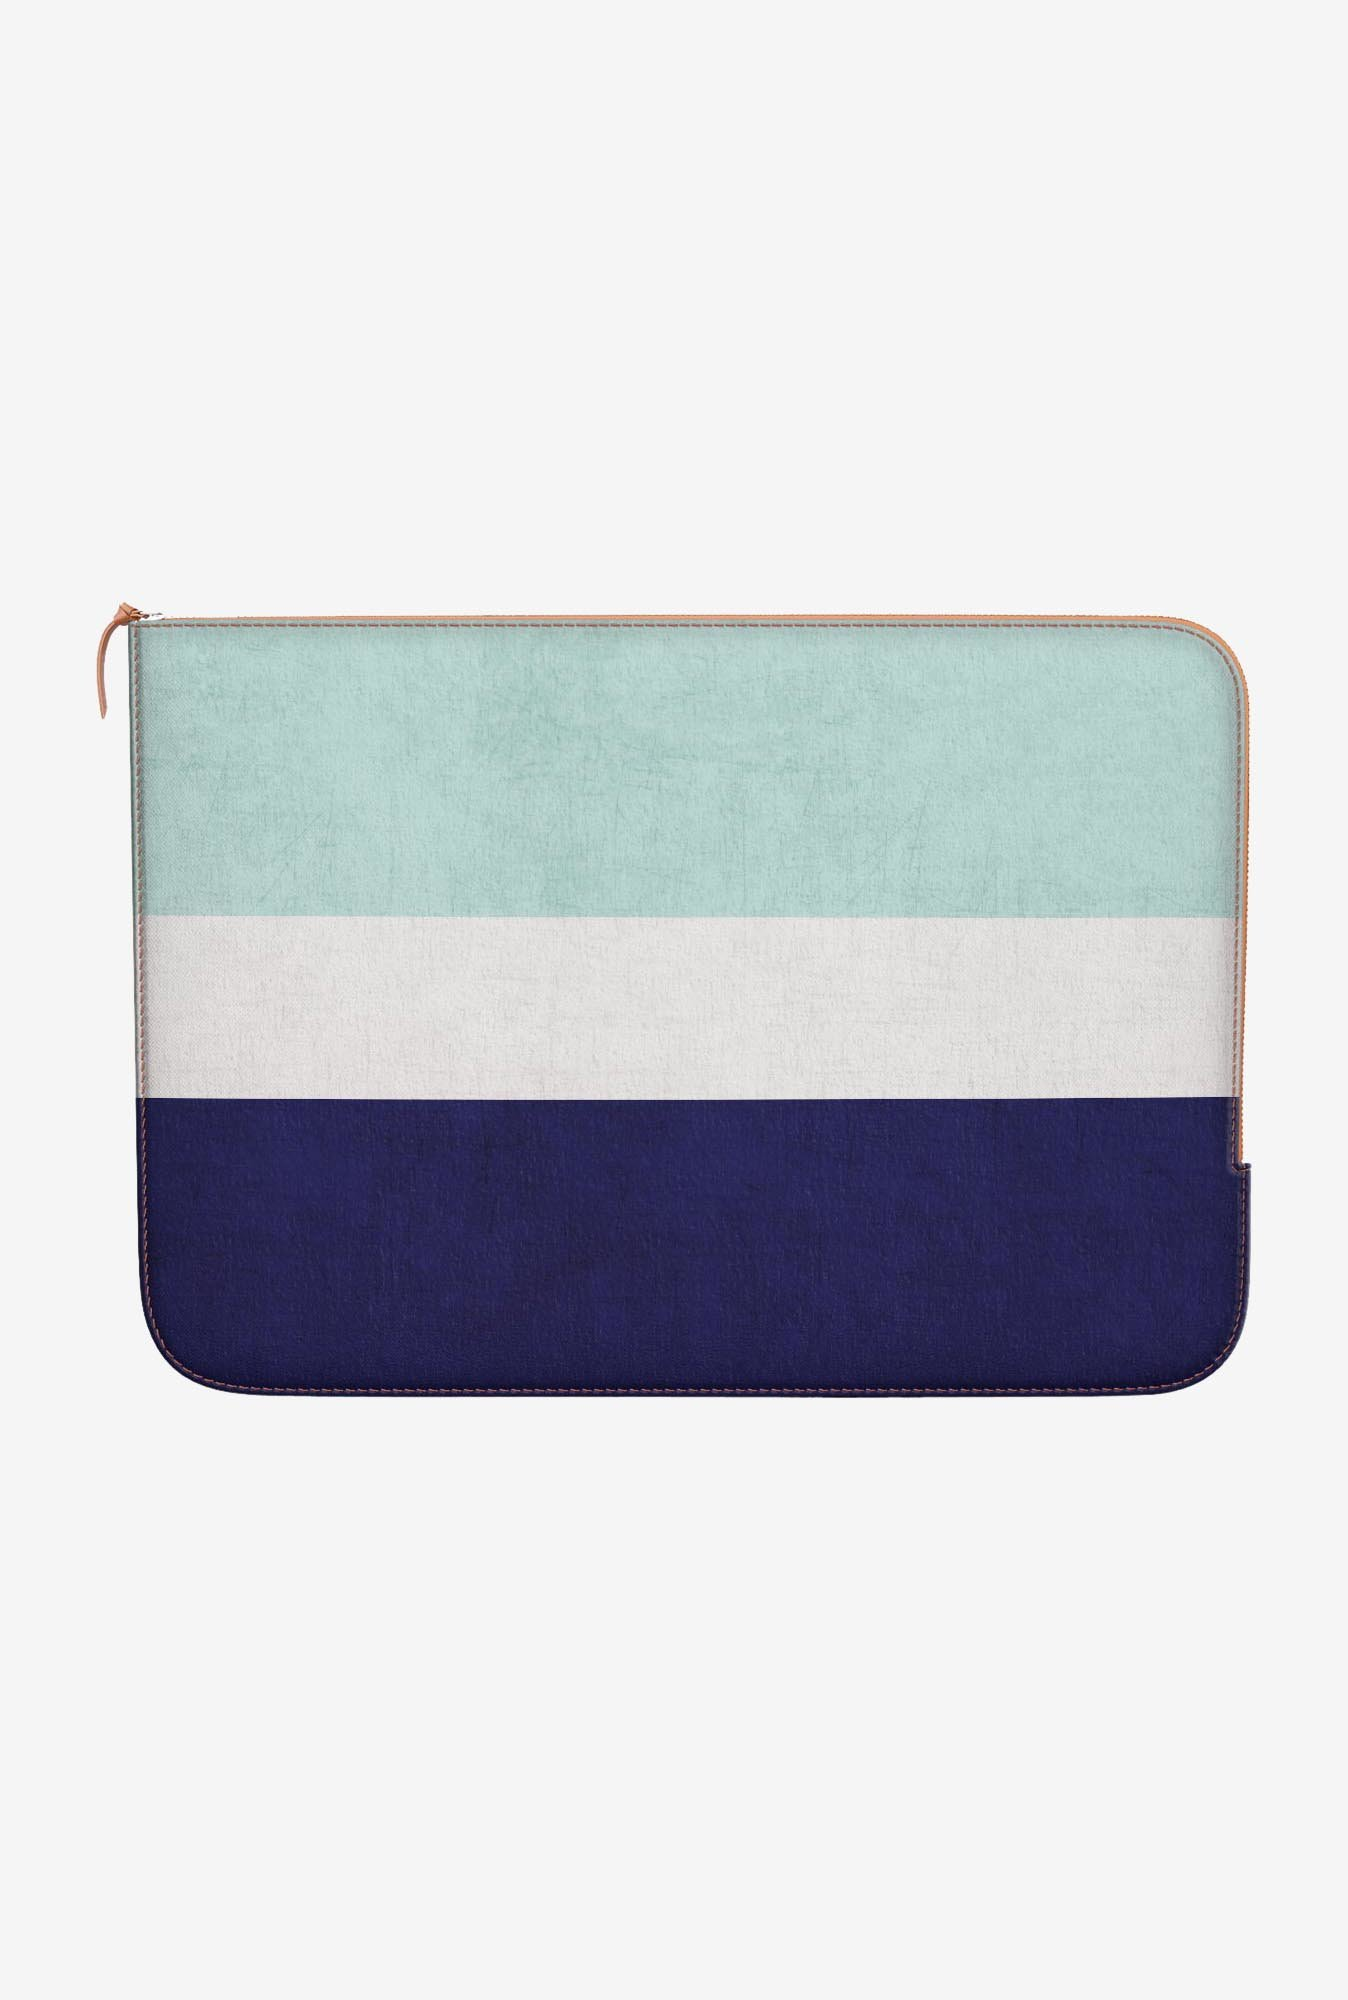 DailyObjects Ocean Classic MacBook Pro 13 Zippered Sleeve